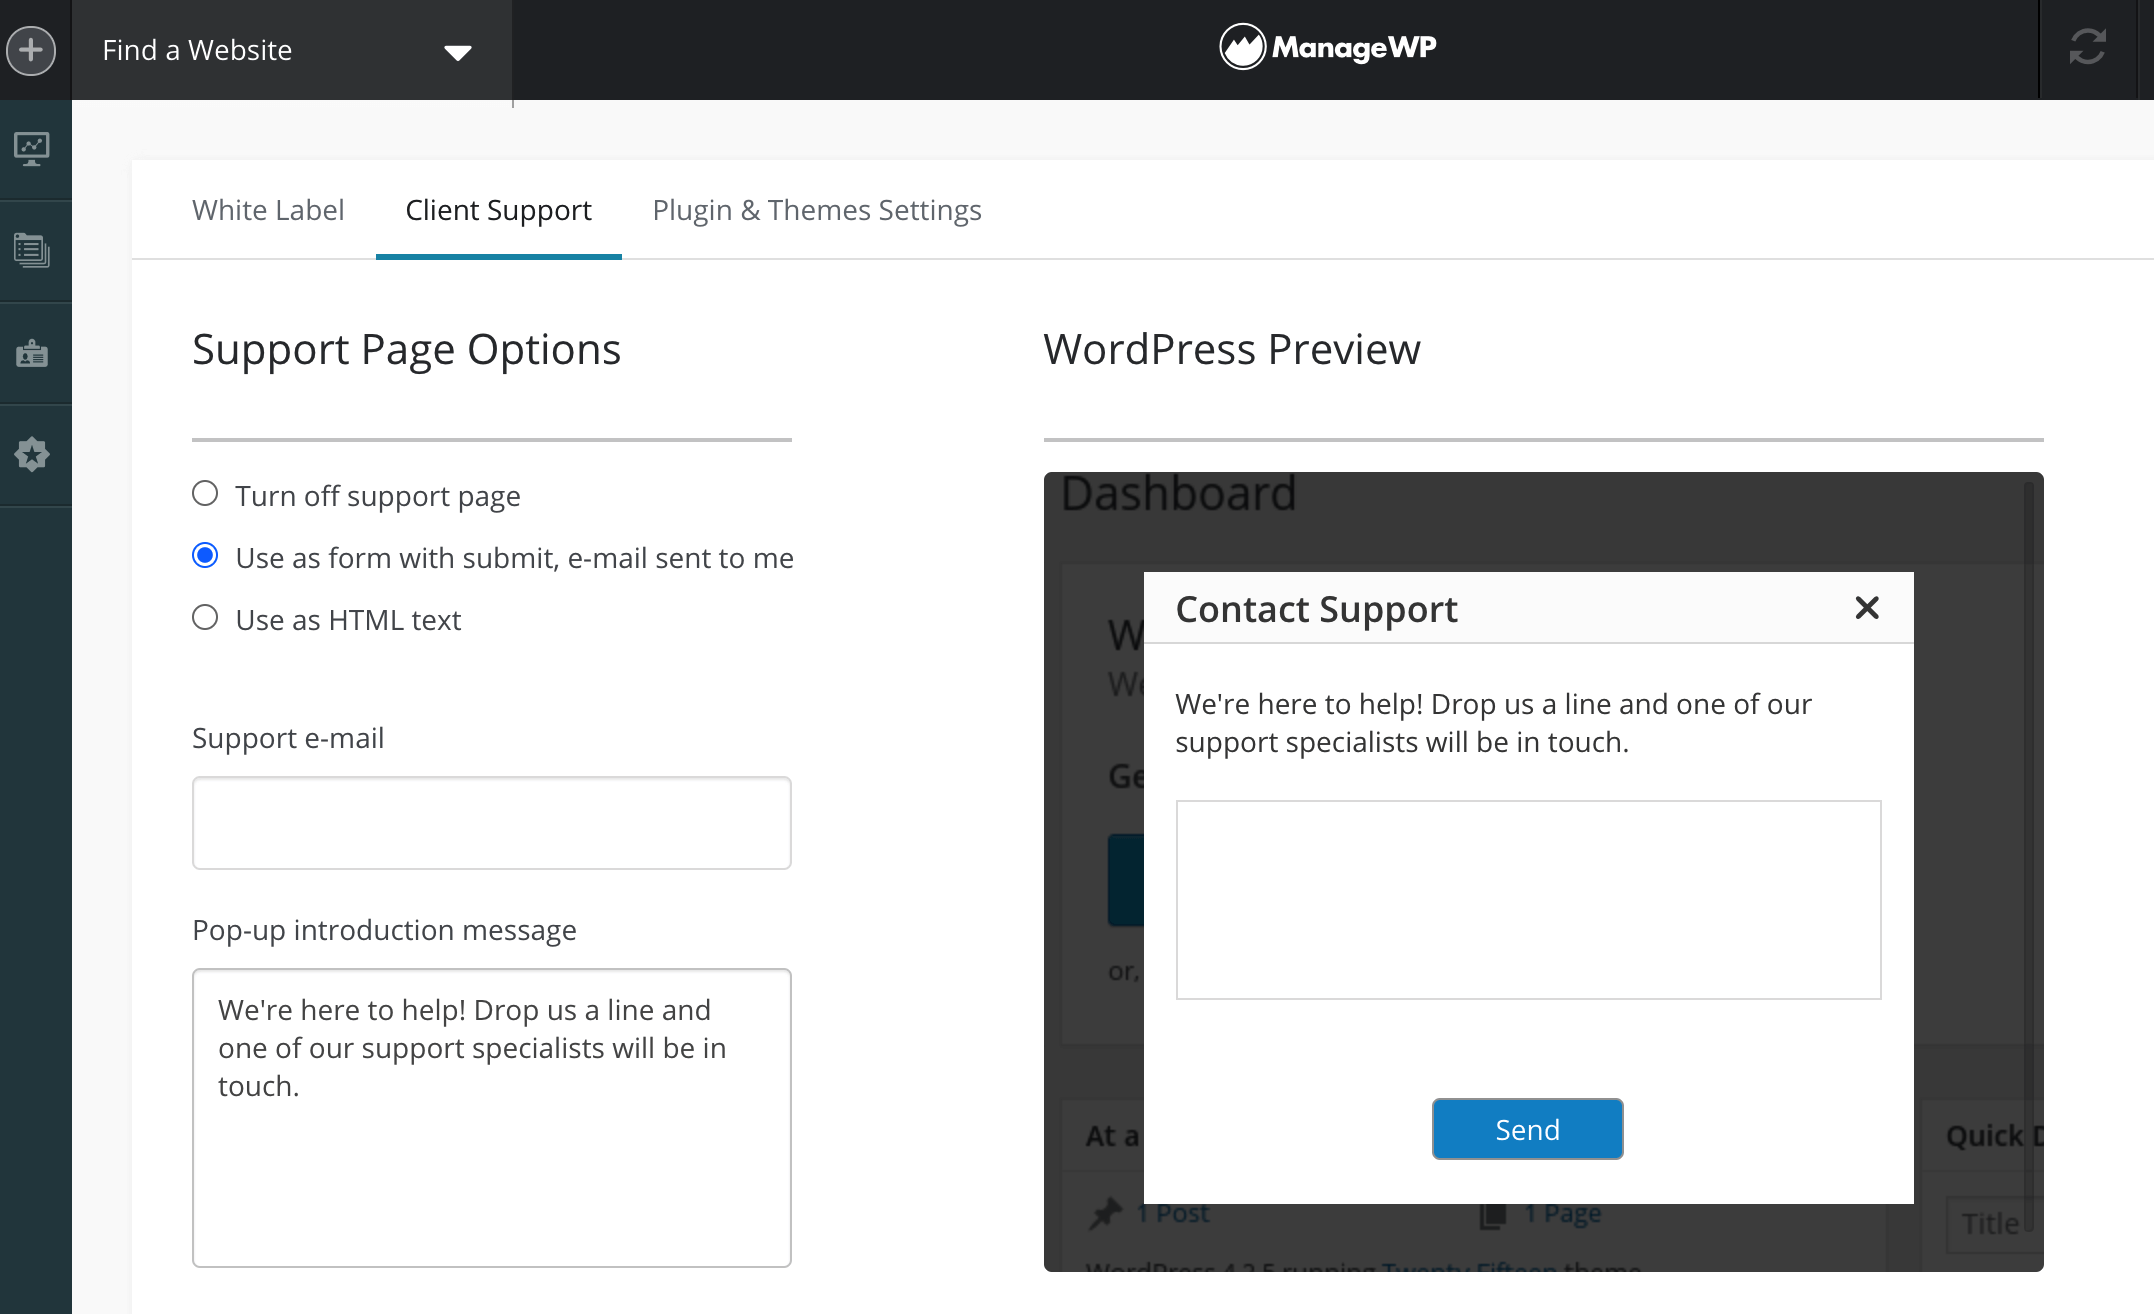 The ManageWP client support form settings.